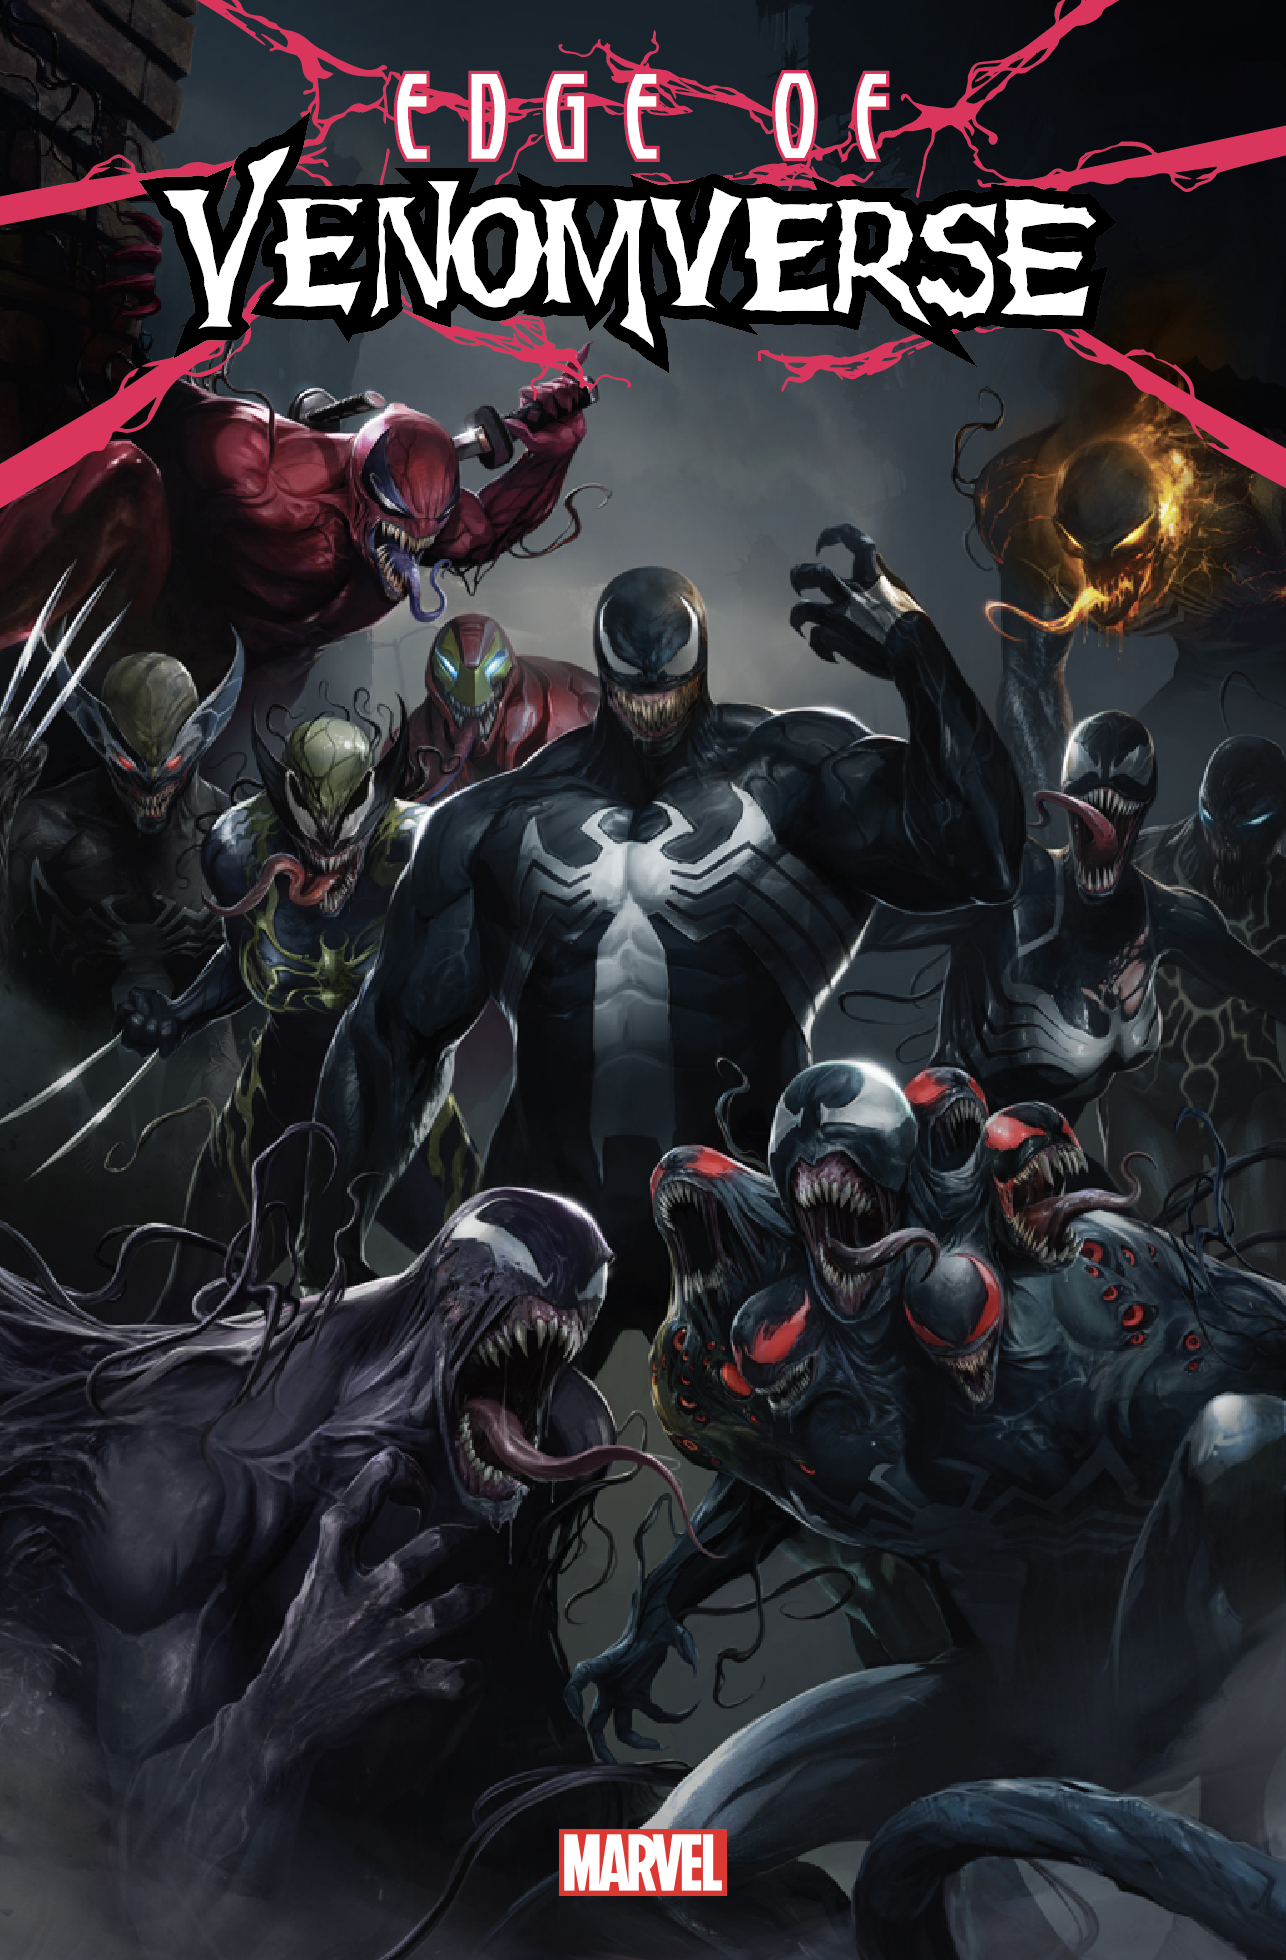 Edge_of_Venomverse_Mattina_Promo.jpg